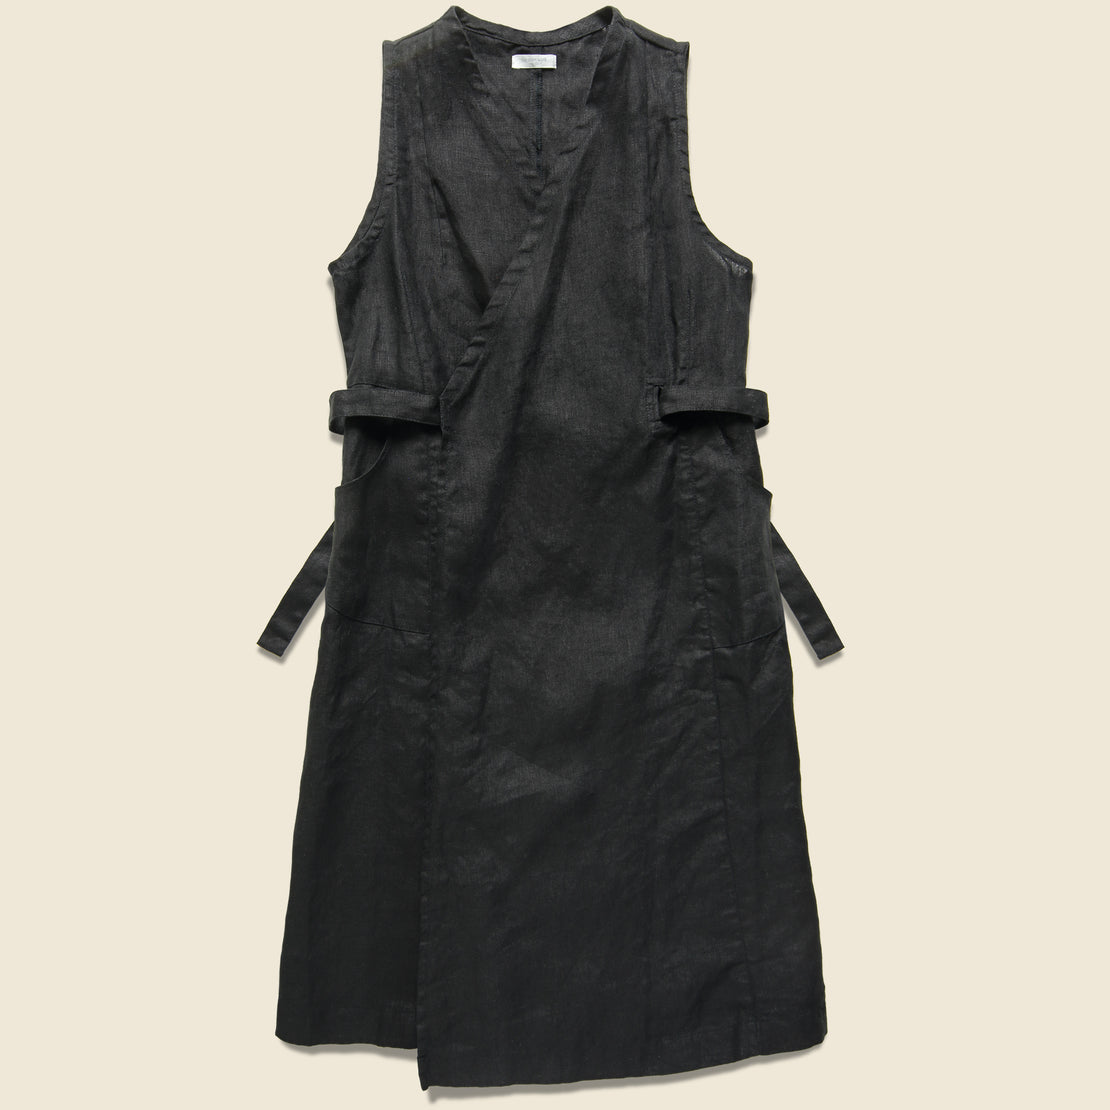 Fog Linen Linen Salon Dress - Black